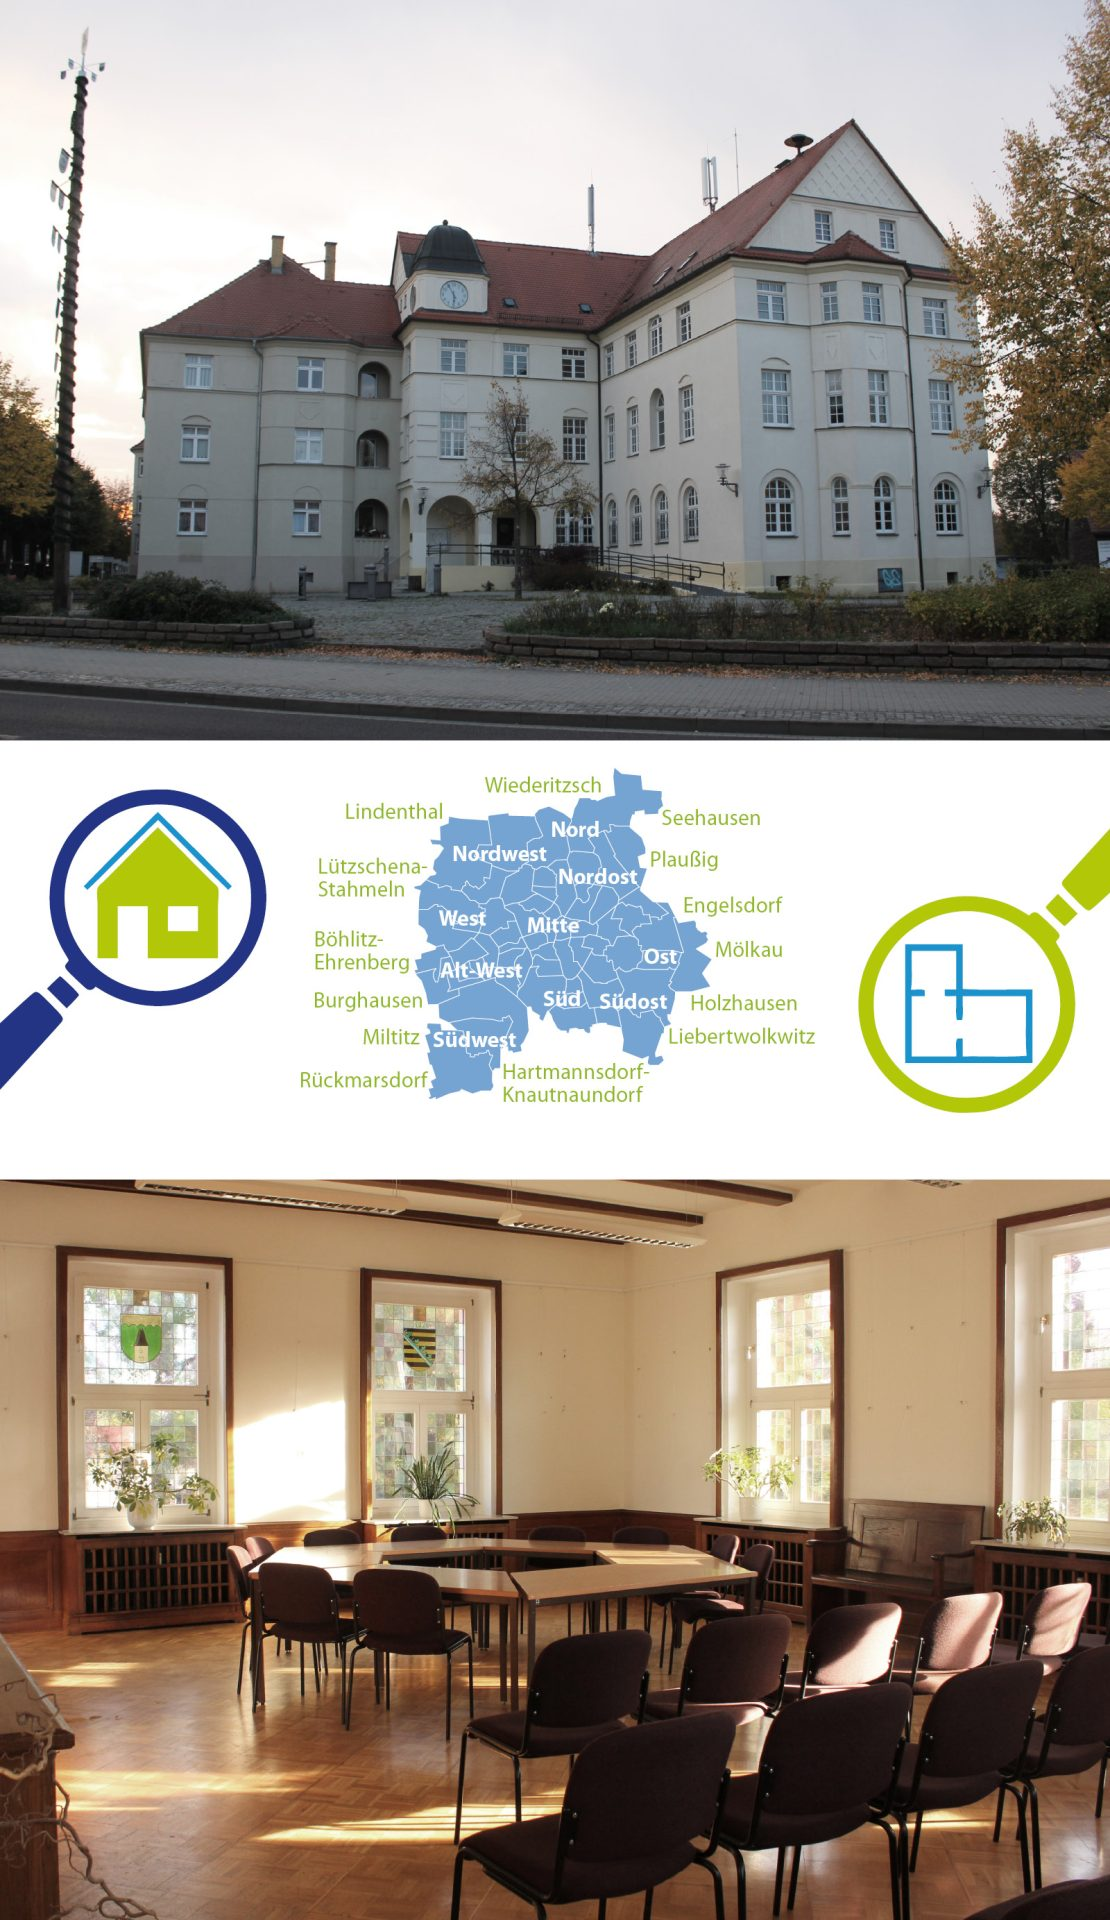 Review of the meeting venues of local committees of the City of Leipzig